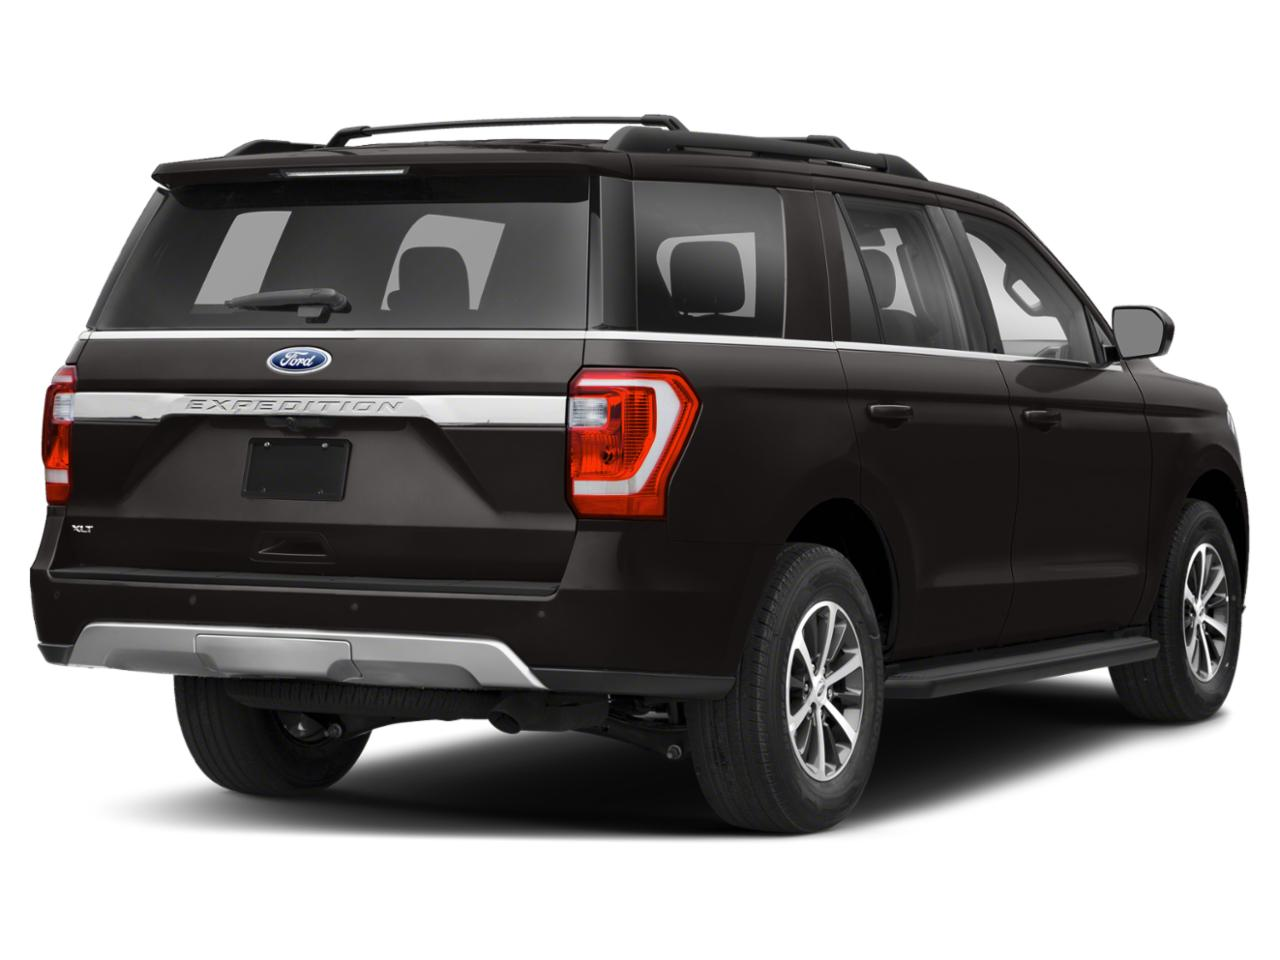 2019 Ford Expedition XLT Sport Utility Slide